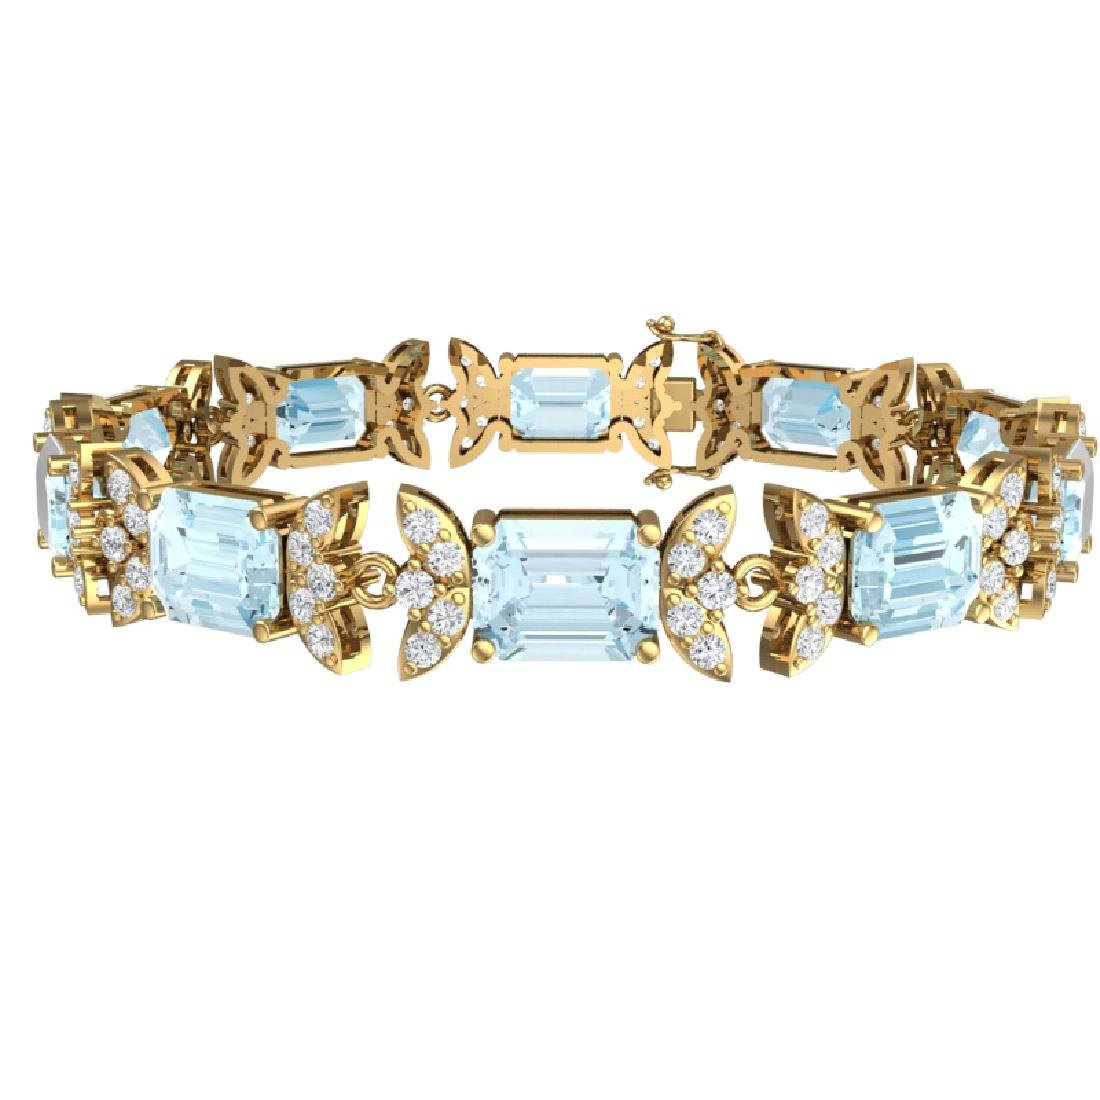 39.65 CTW Royalty Sky Topaz & VS Diamond Bracelet 18K - 3